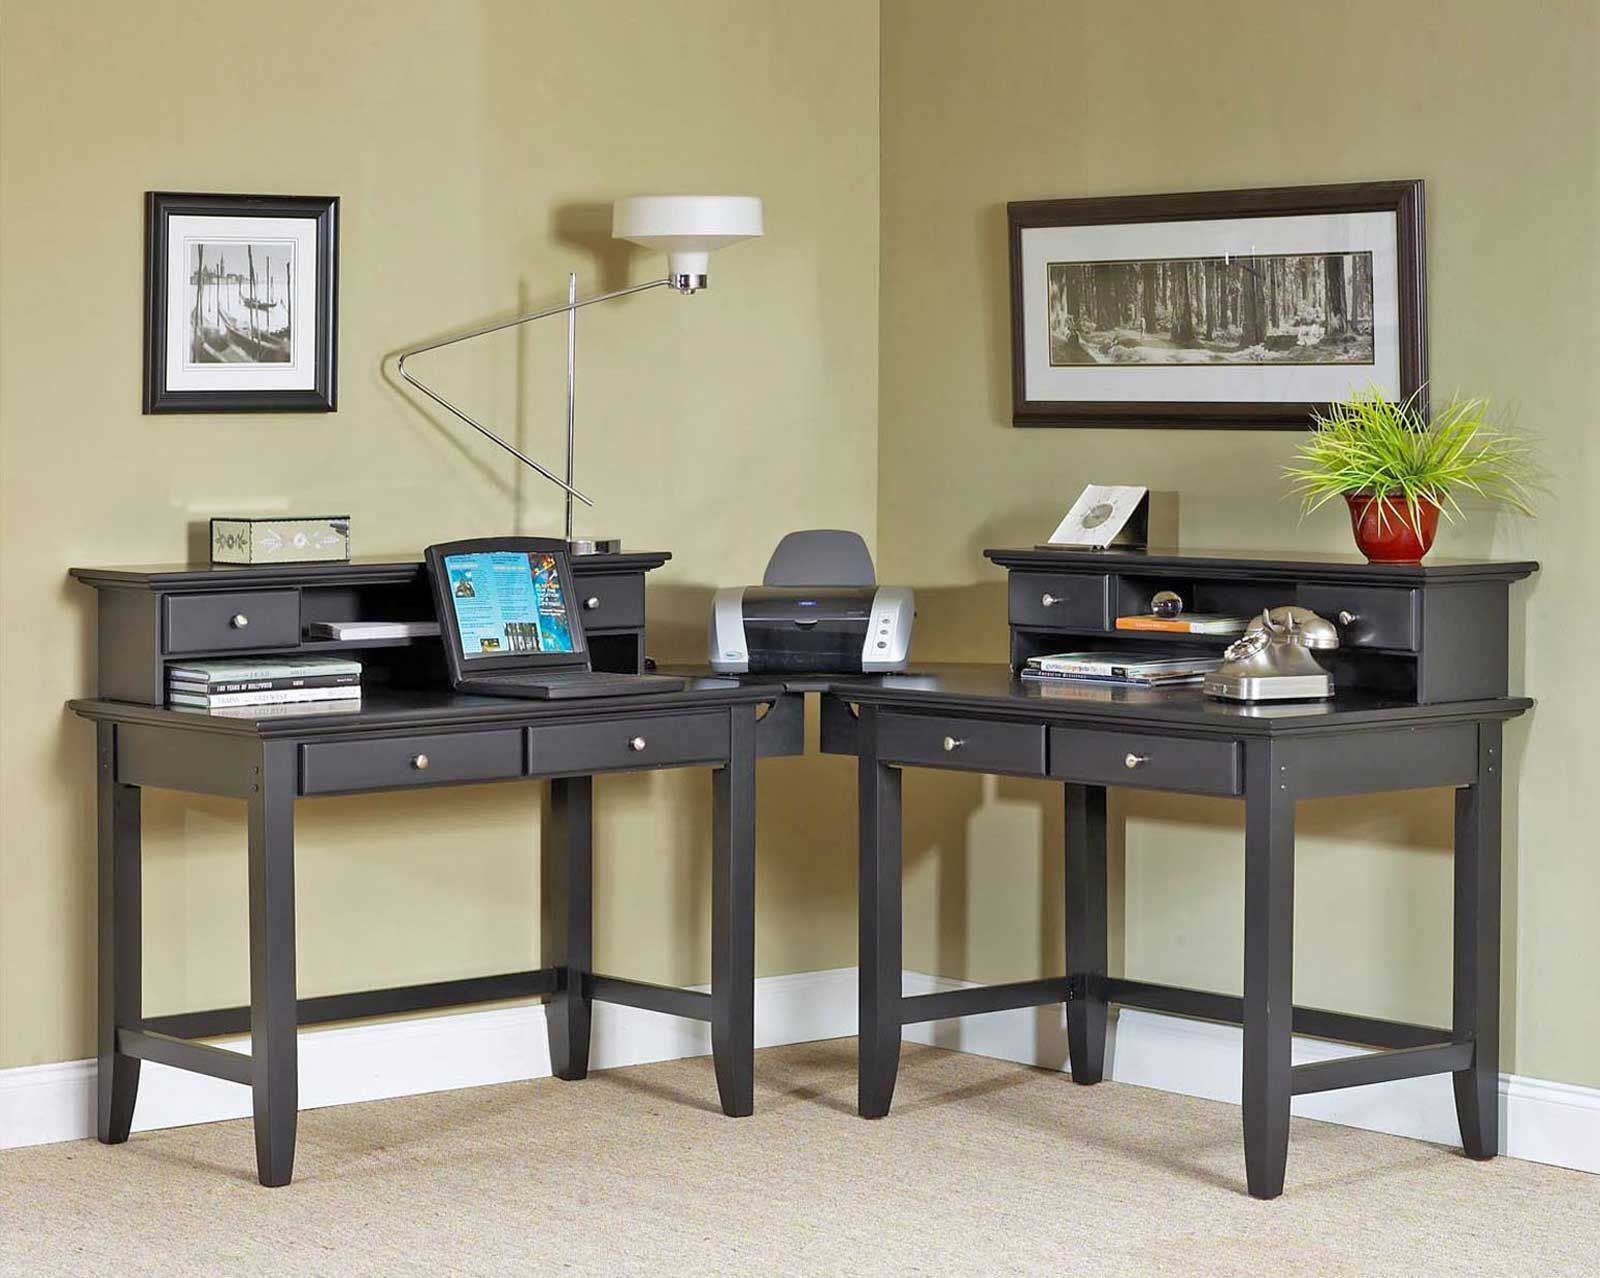 Home Office Furniture West Palm Beach Minimalist Decoration Brilliant 18 Best Office Images On Pinterest  Computer Desks Office Desks . Inspiration